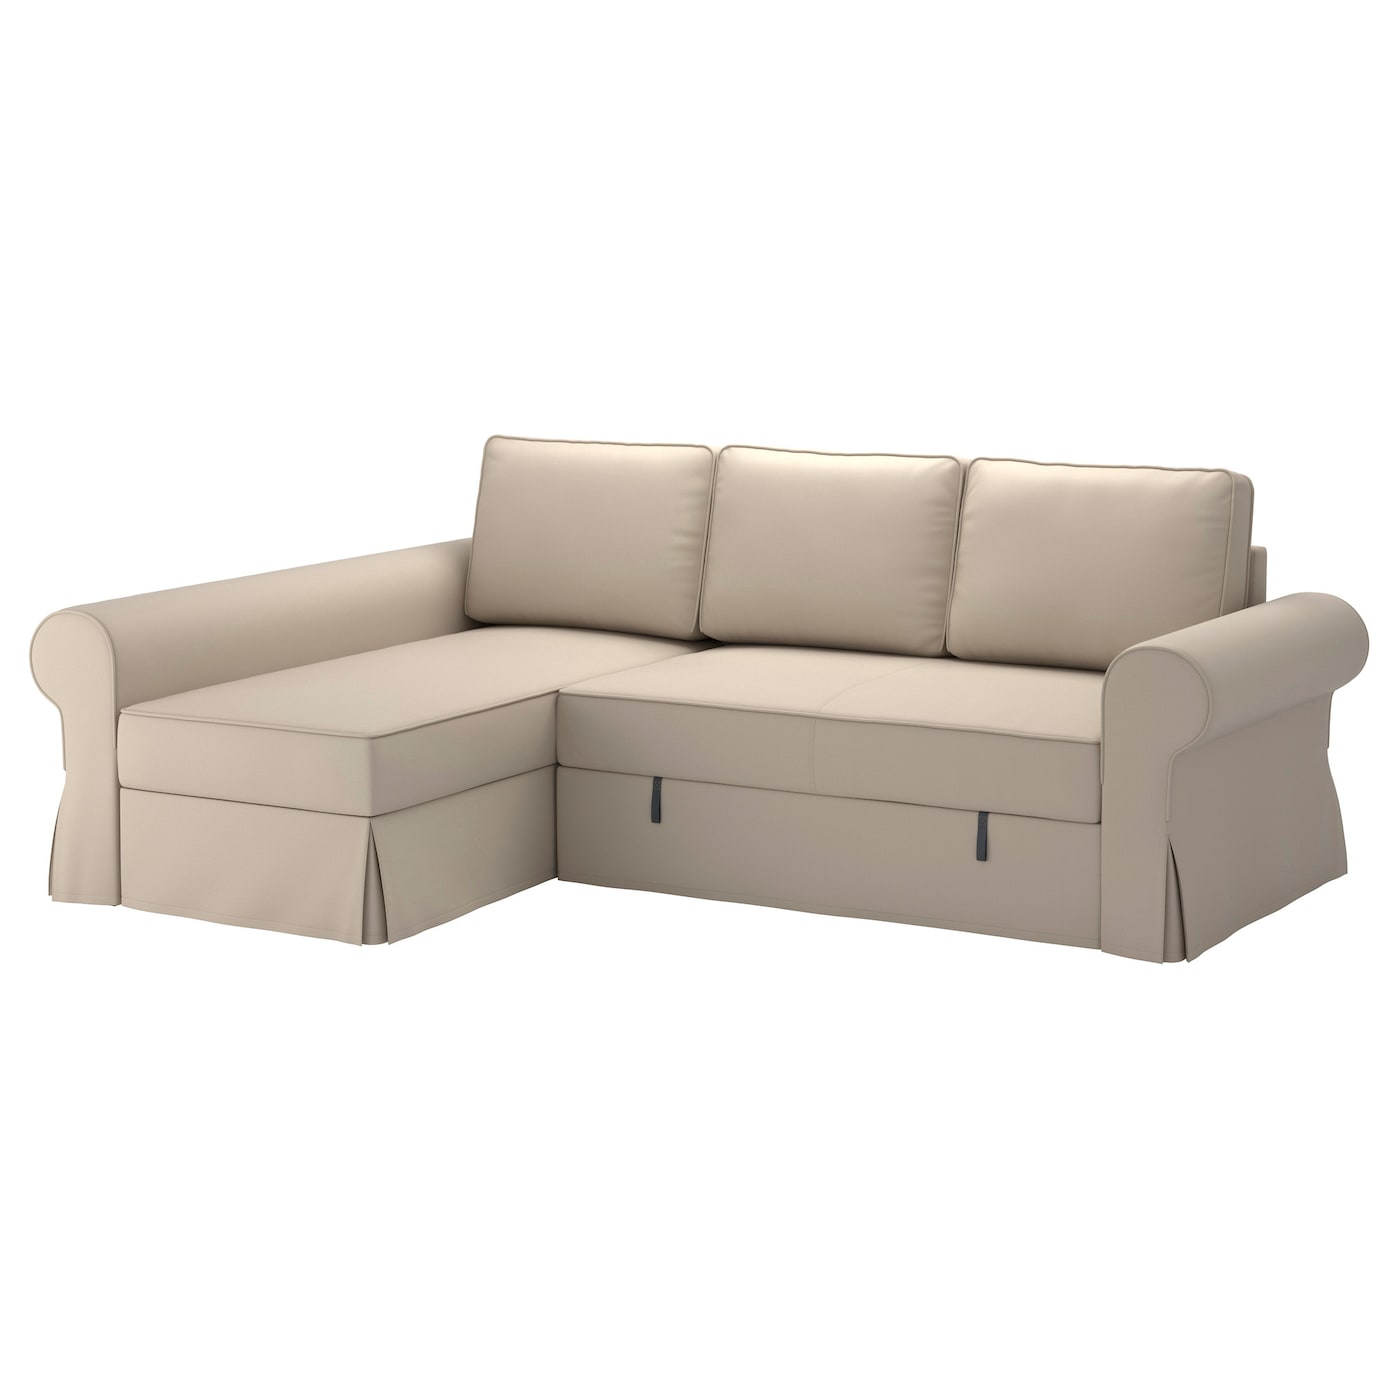 Backabro cover sofa bed with chaise longue ramna beige ikea for Sofa jugendzimmer ikea